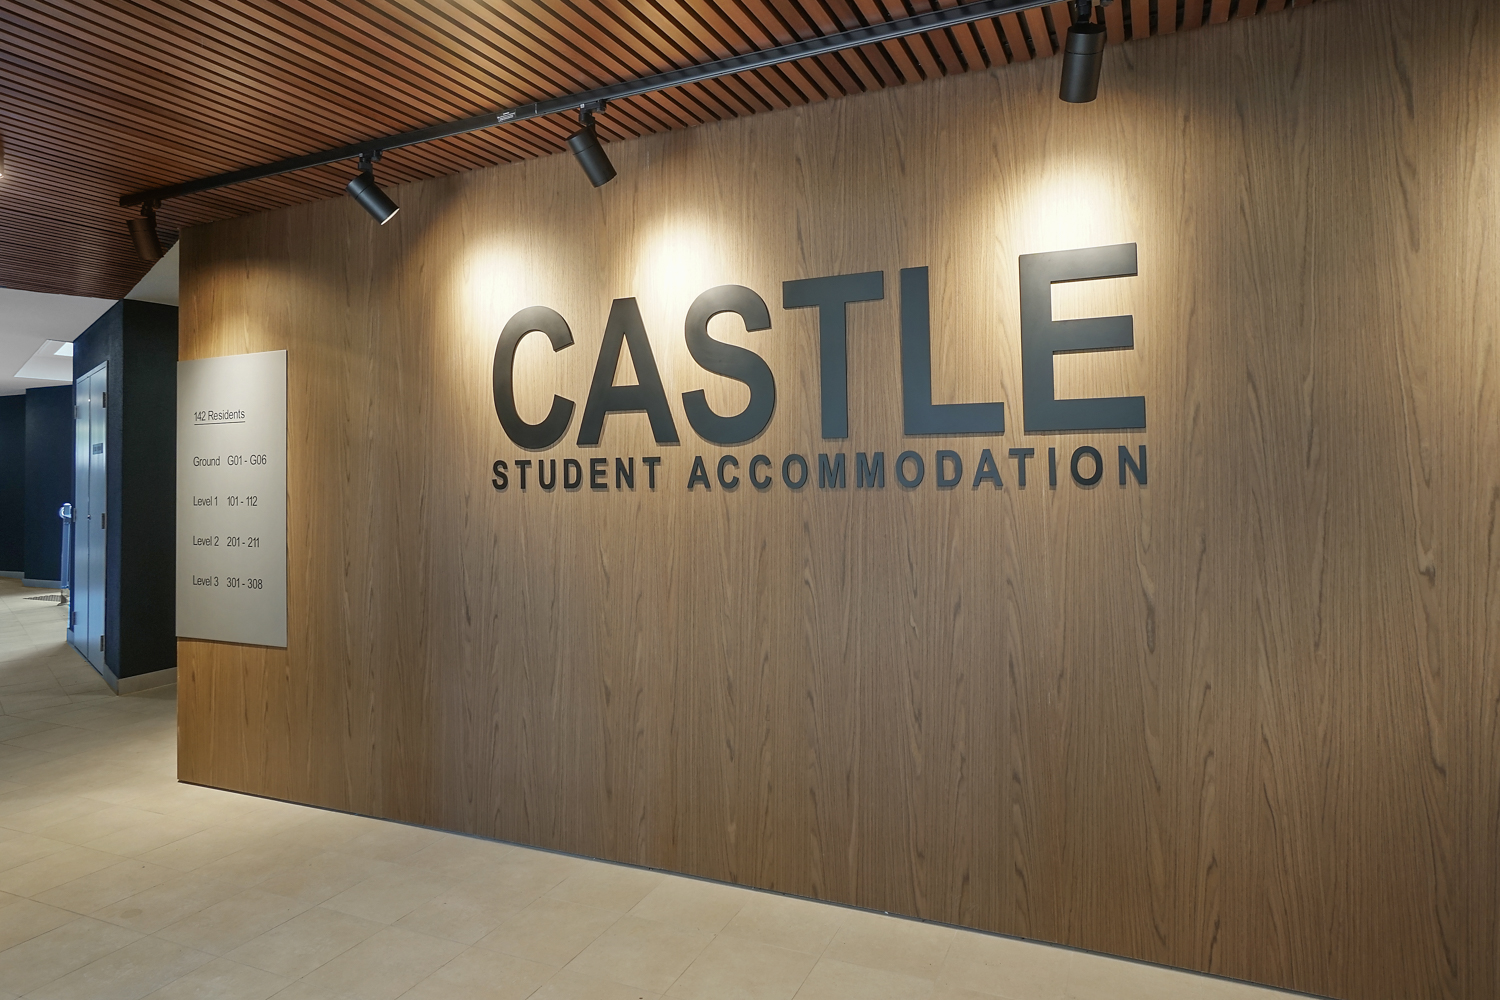 Student Accomodation Image